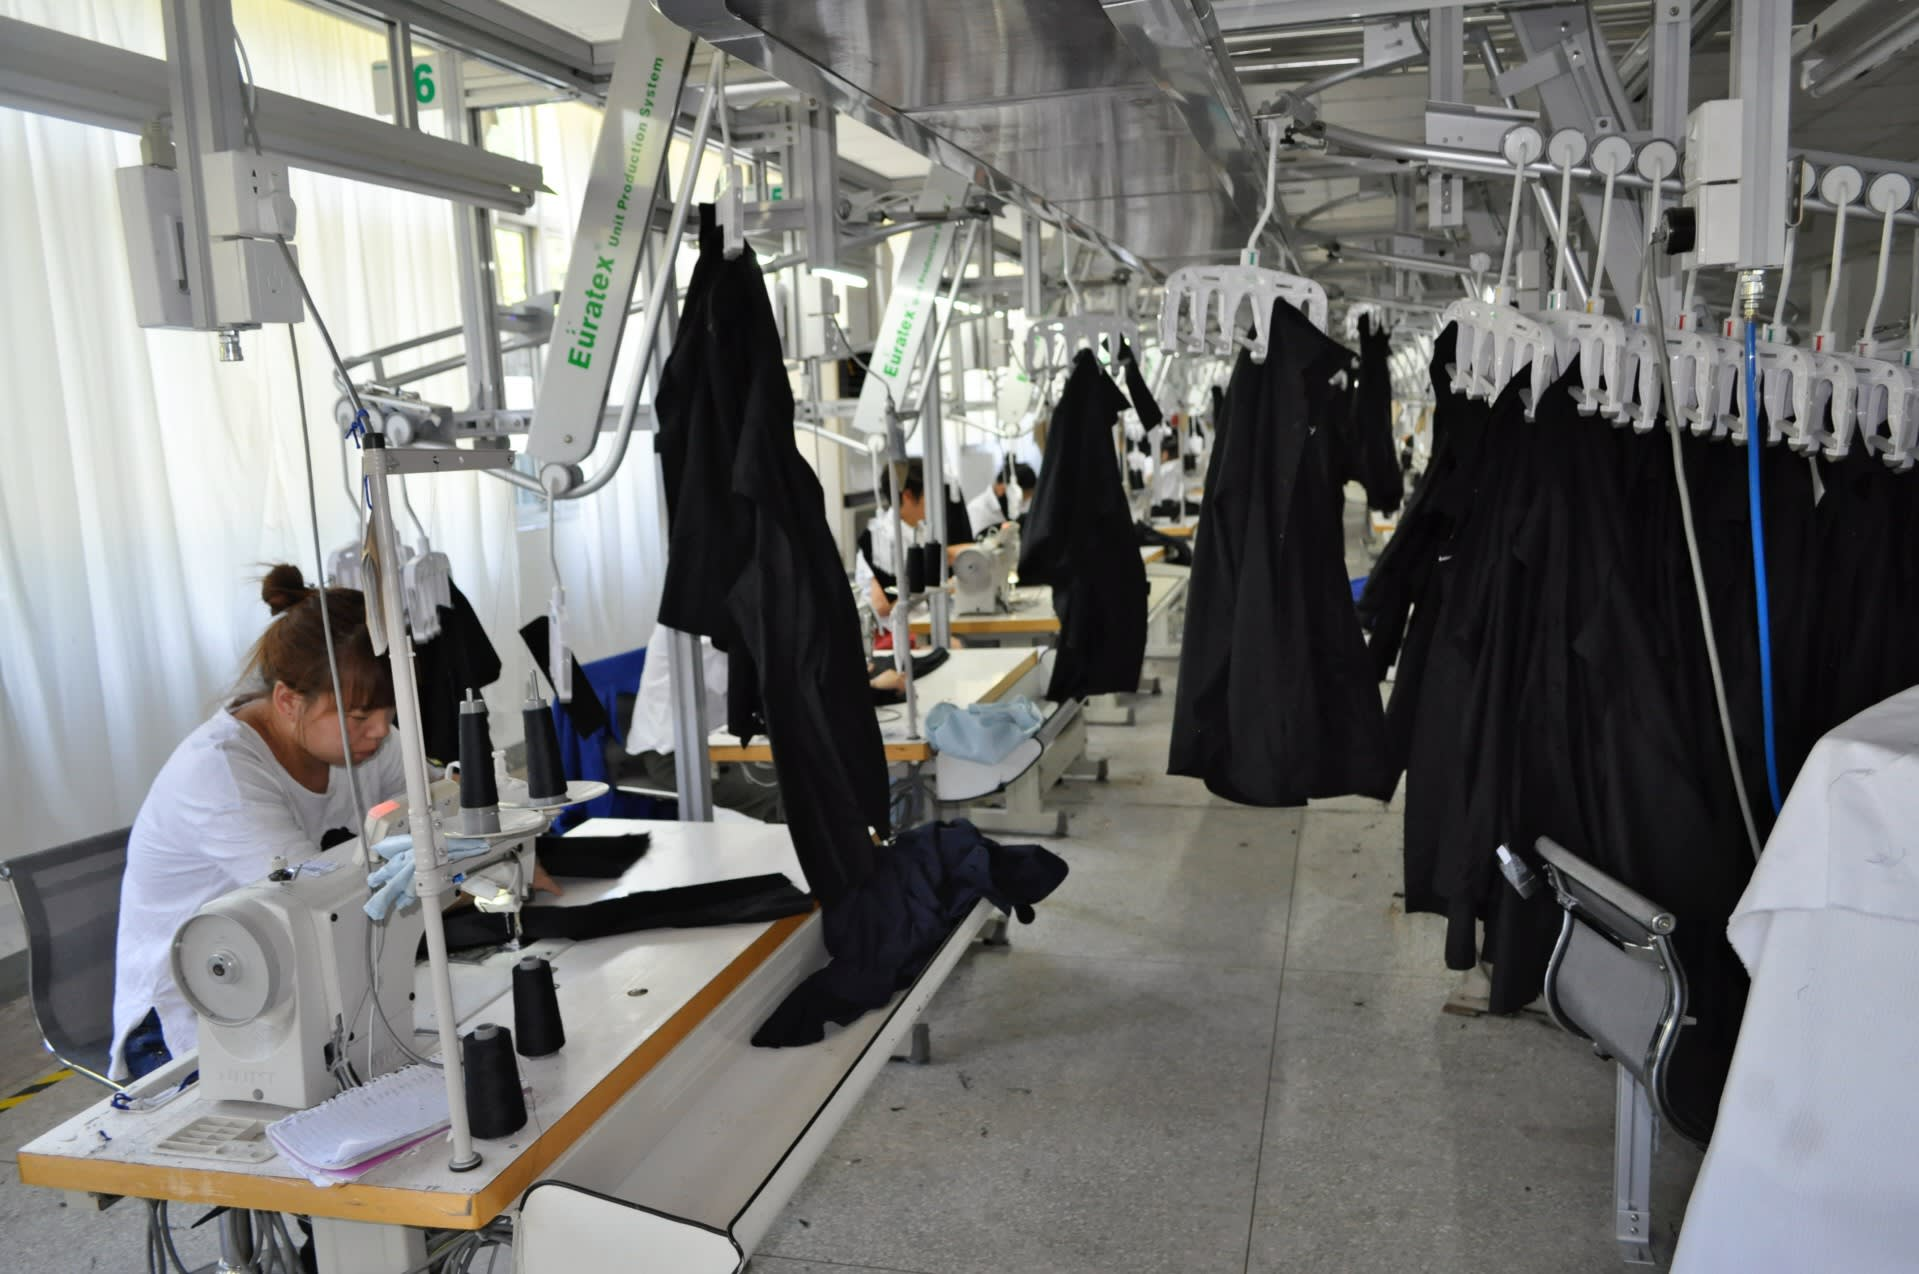 clothing manufacturers overseas clothing production near me